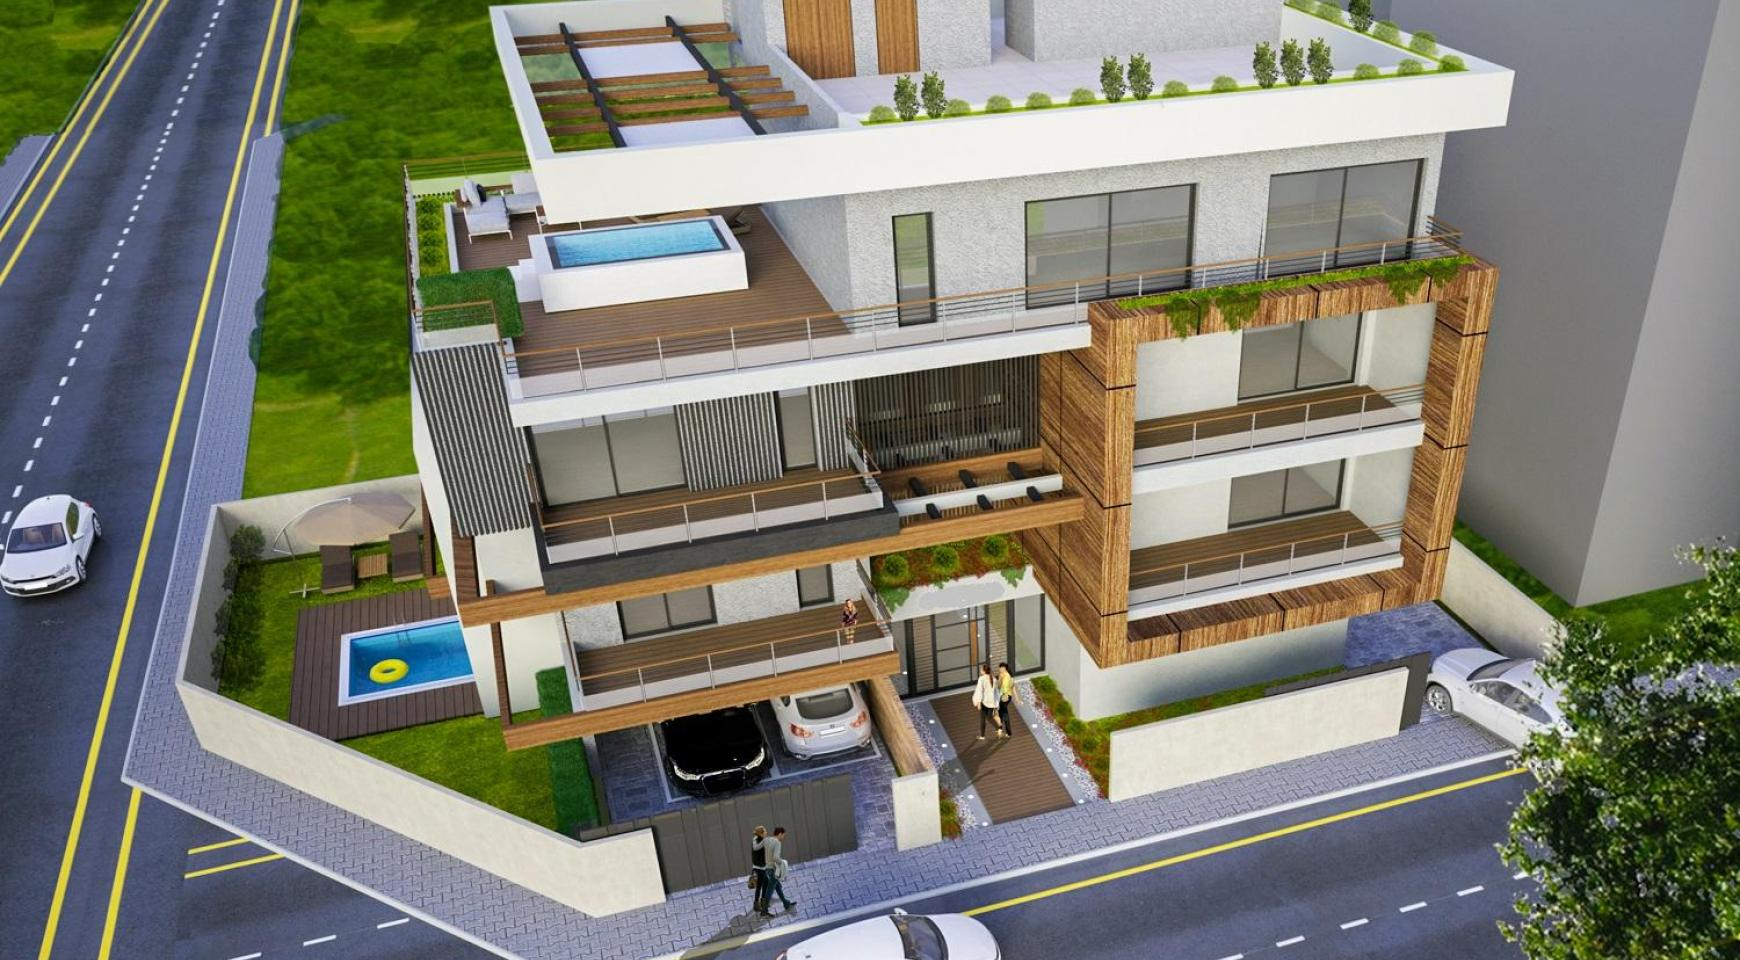 New 3 Bedroom Duplex Apartment in a Modern Building in Columbia Area - 1